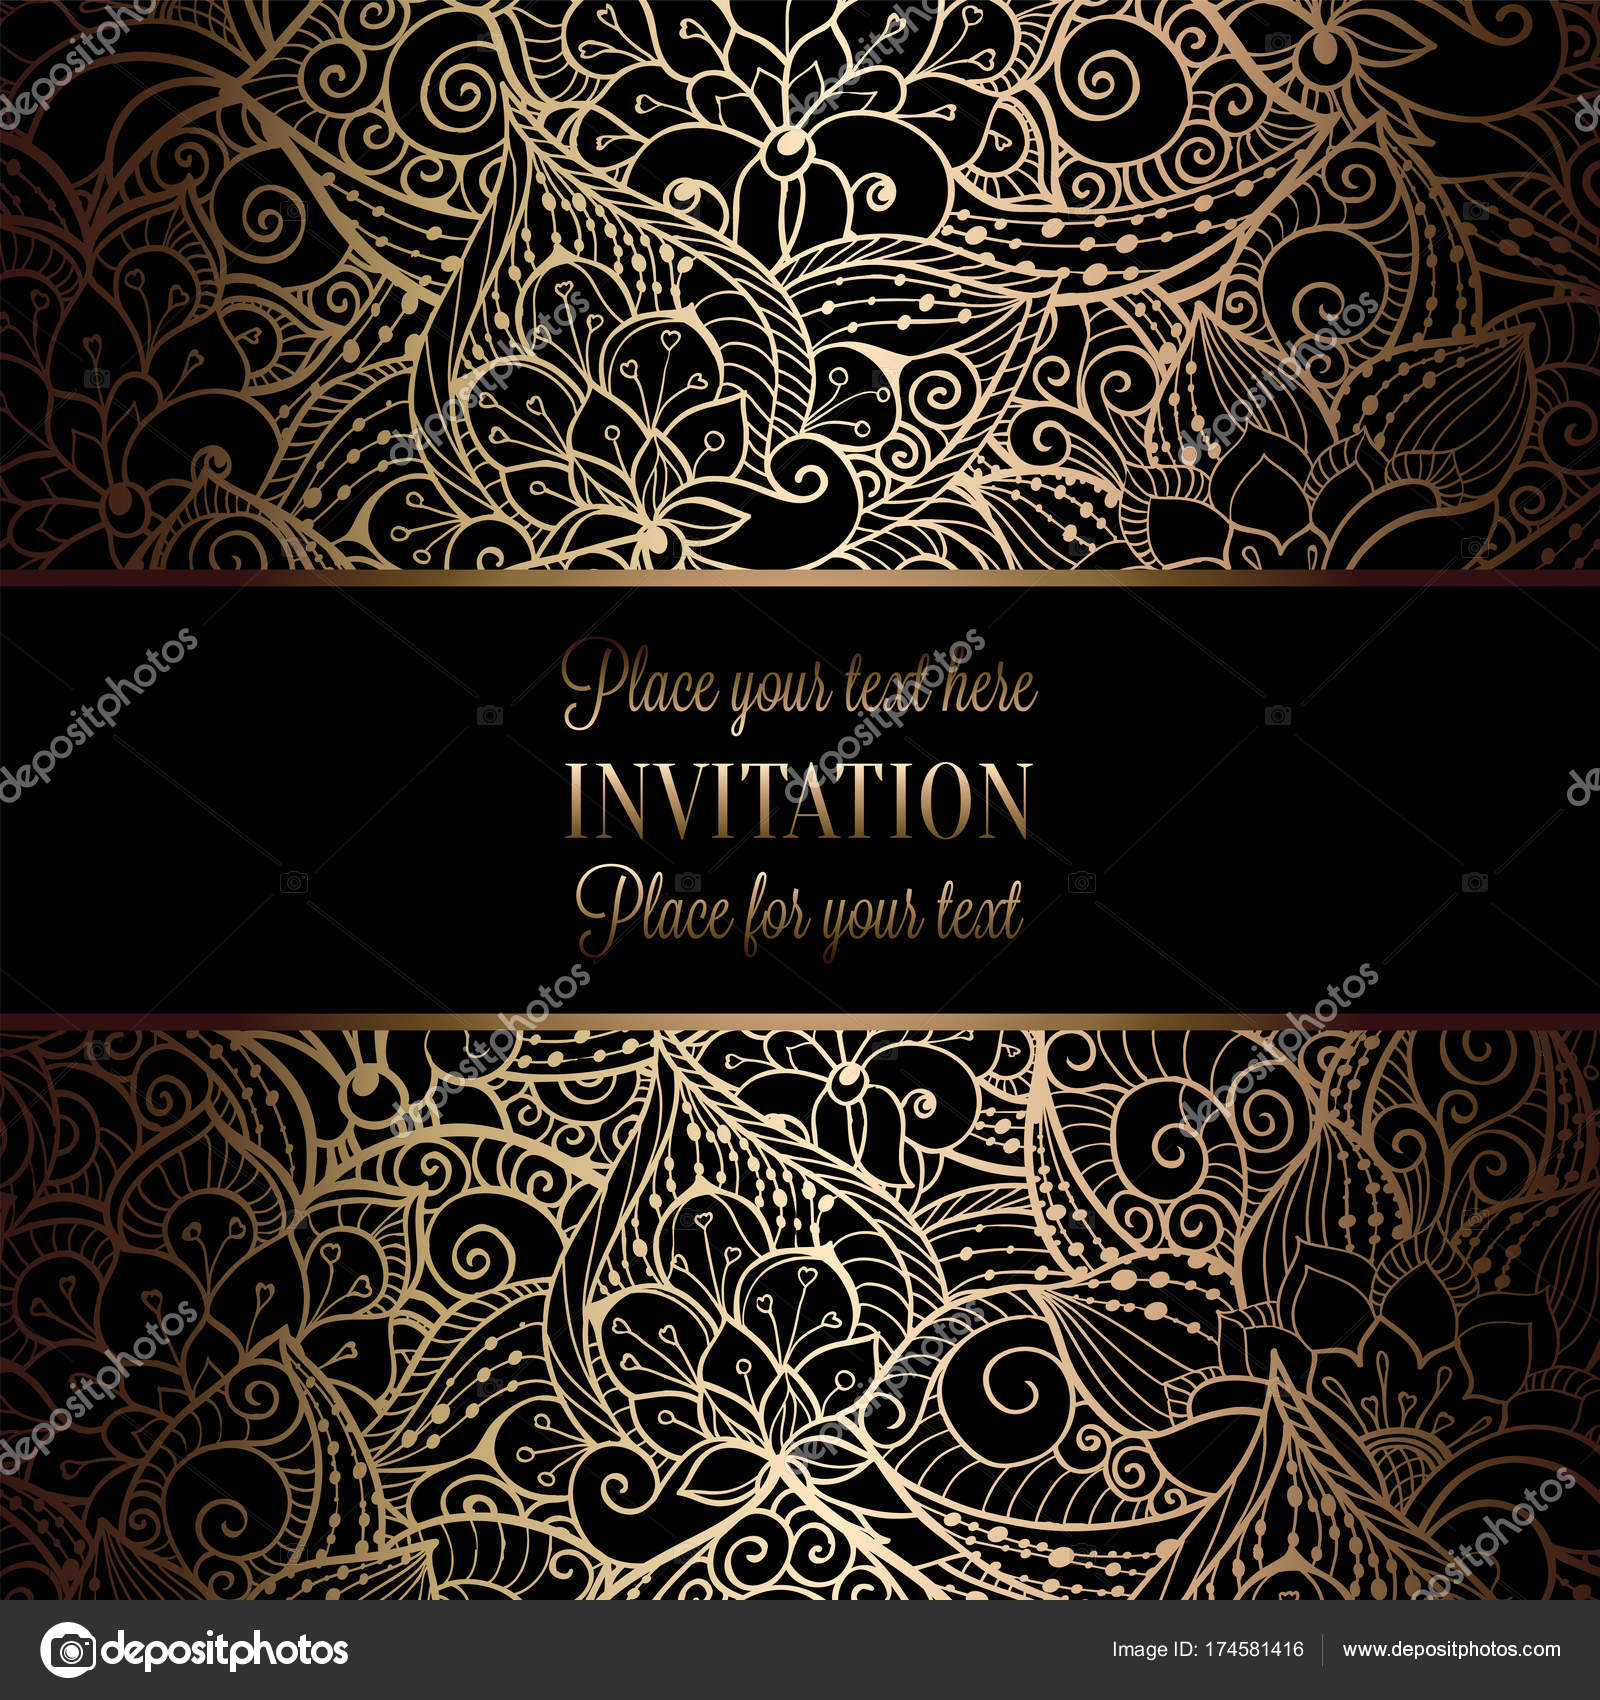 Vintage baroque Wedding Invitation template with damask background.  Tradition decoration for wedding. Vector illustration in black and gold —  Stock Vector © MiaMilky #174581416